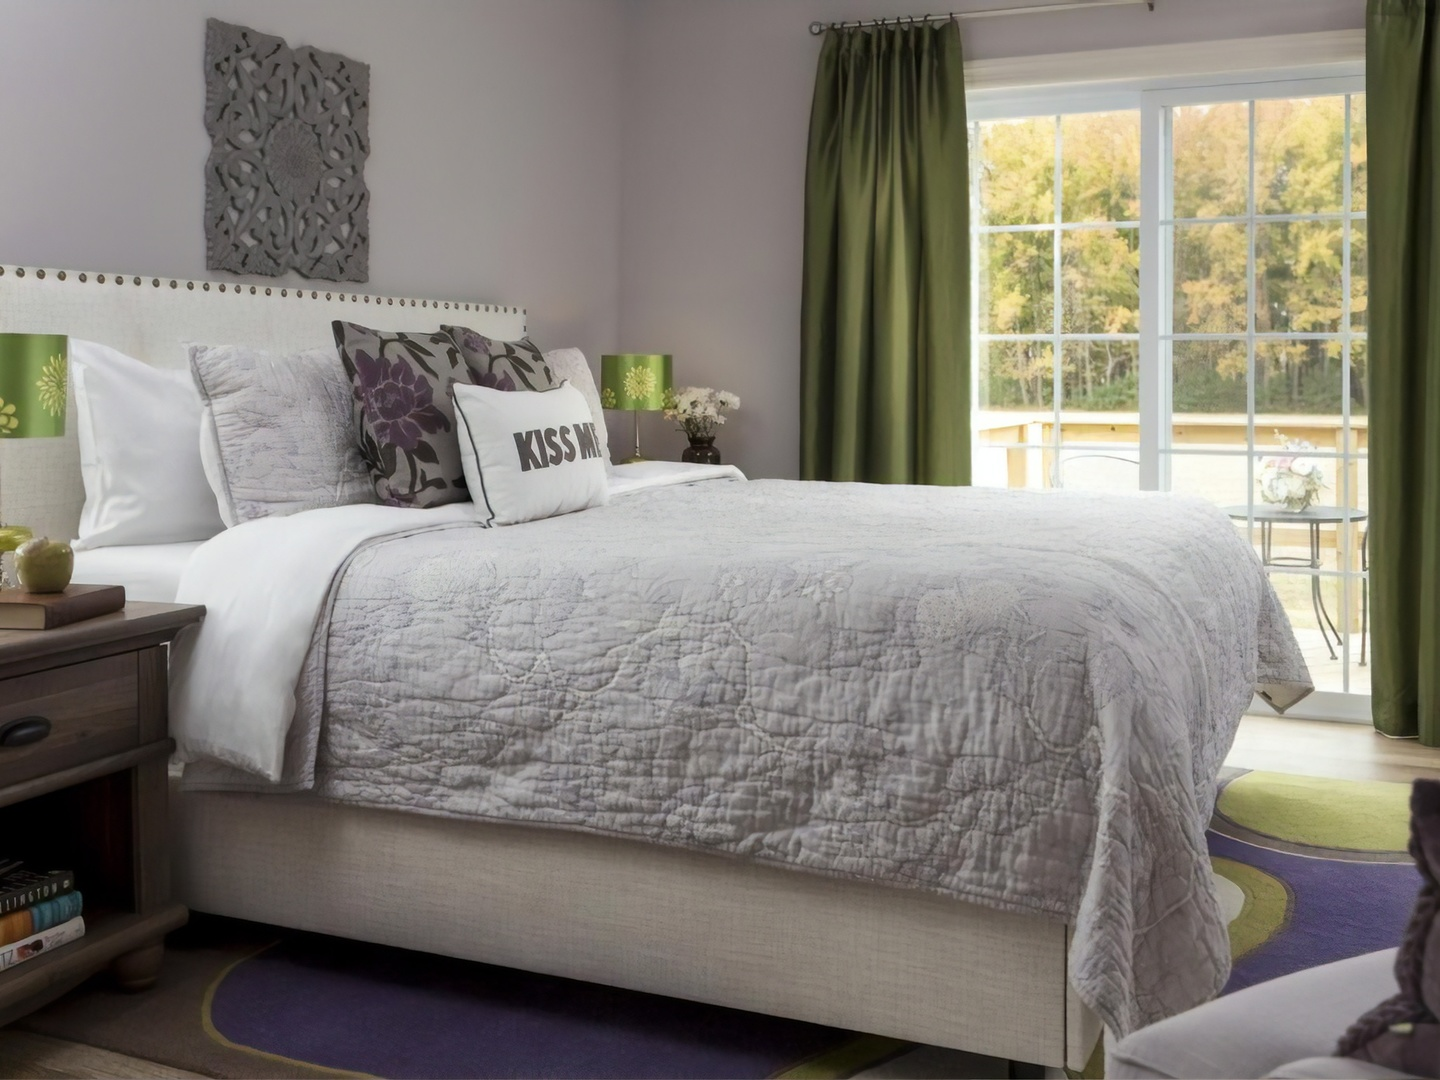 A bedroom with a large bed in a hotel room at Inn at Huntingfield Creek.